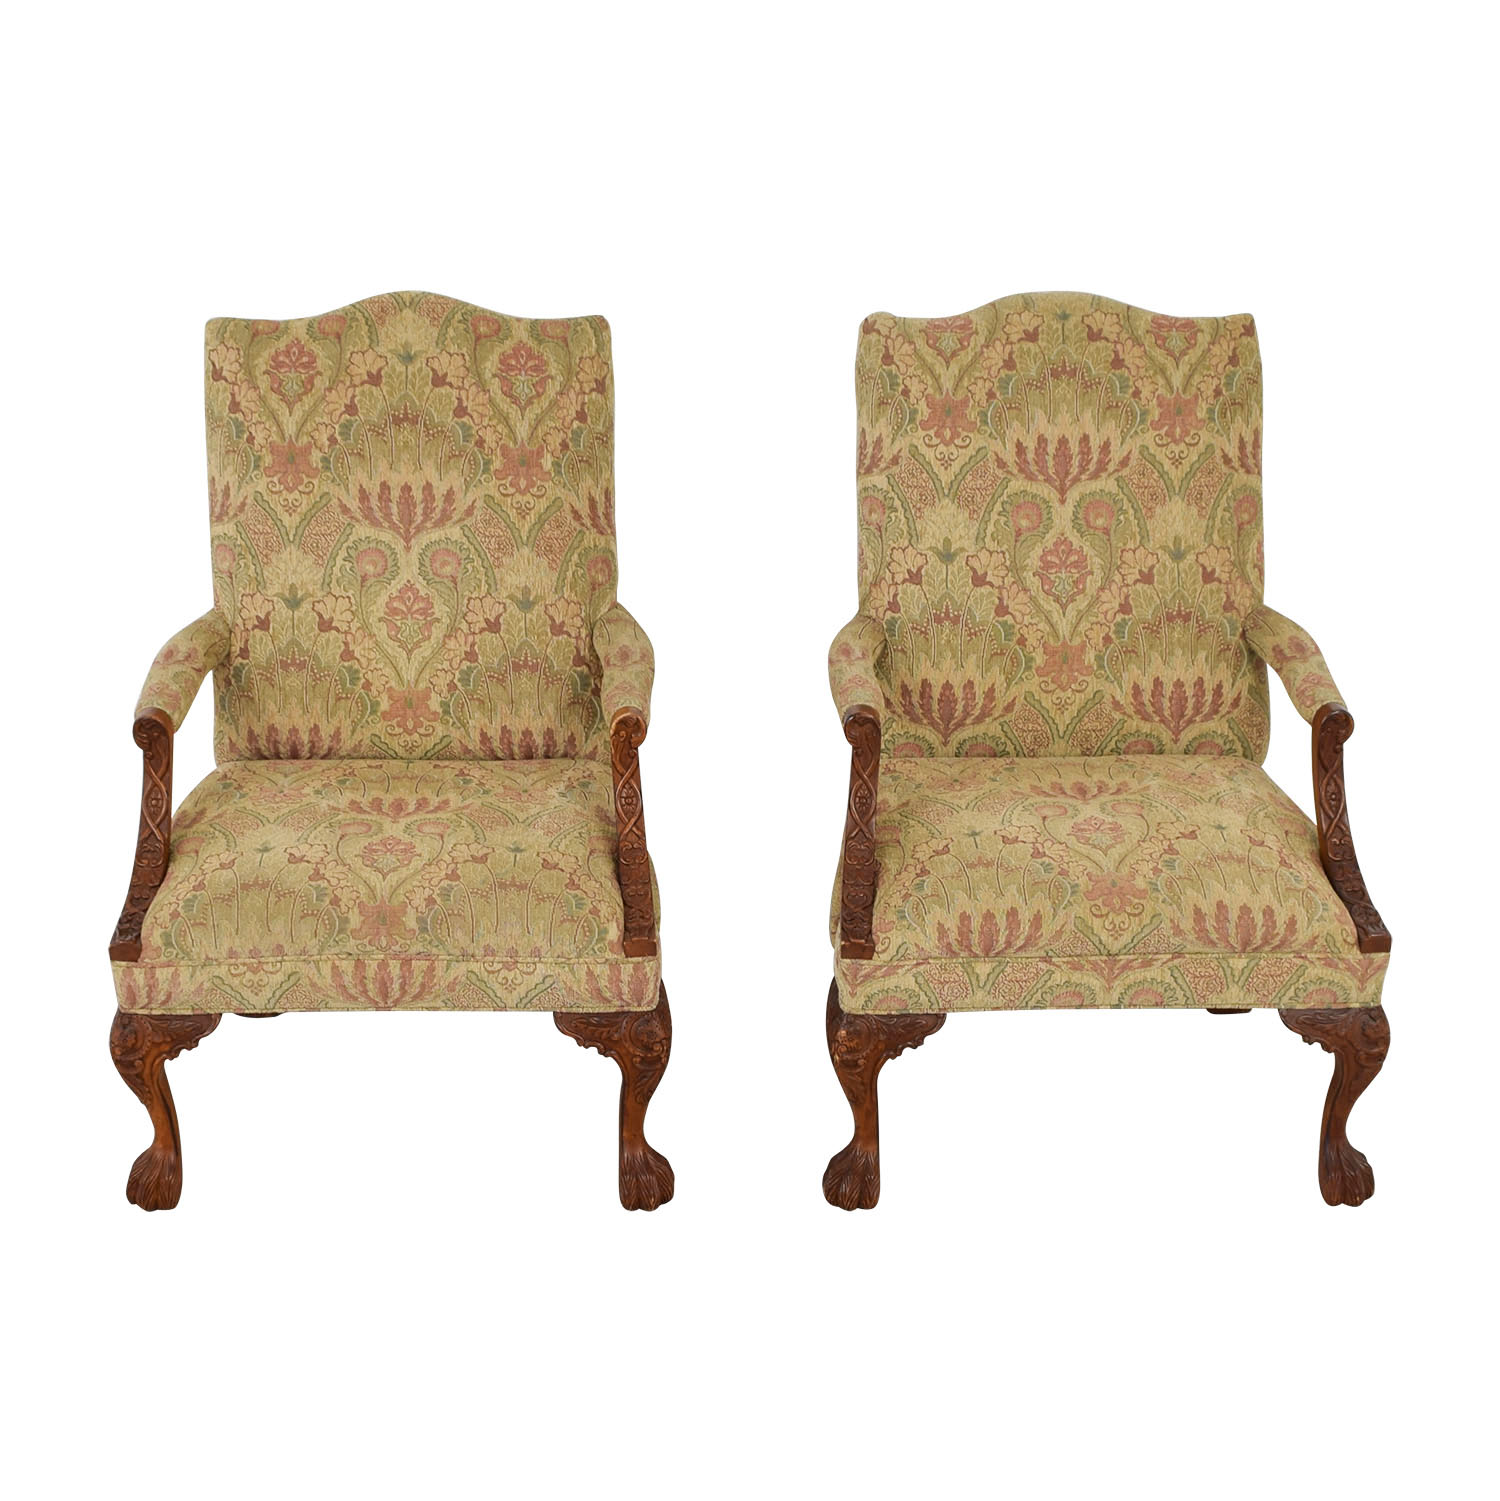 Sam Moore Chairs 80 Off Sam Moore Sam Moore Tibetan Tapestry Old World Finish Carved Wood Chairs Chairs